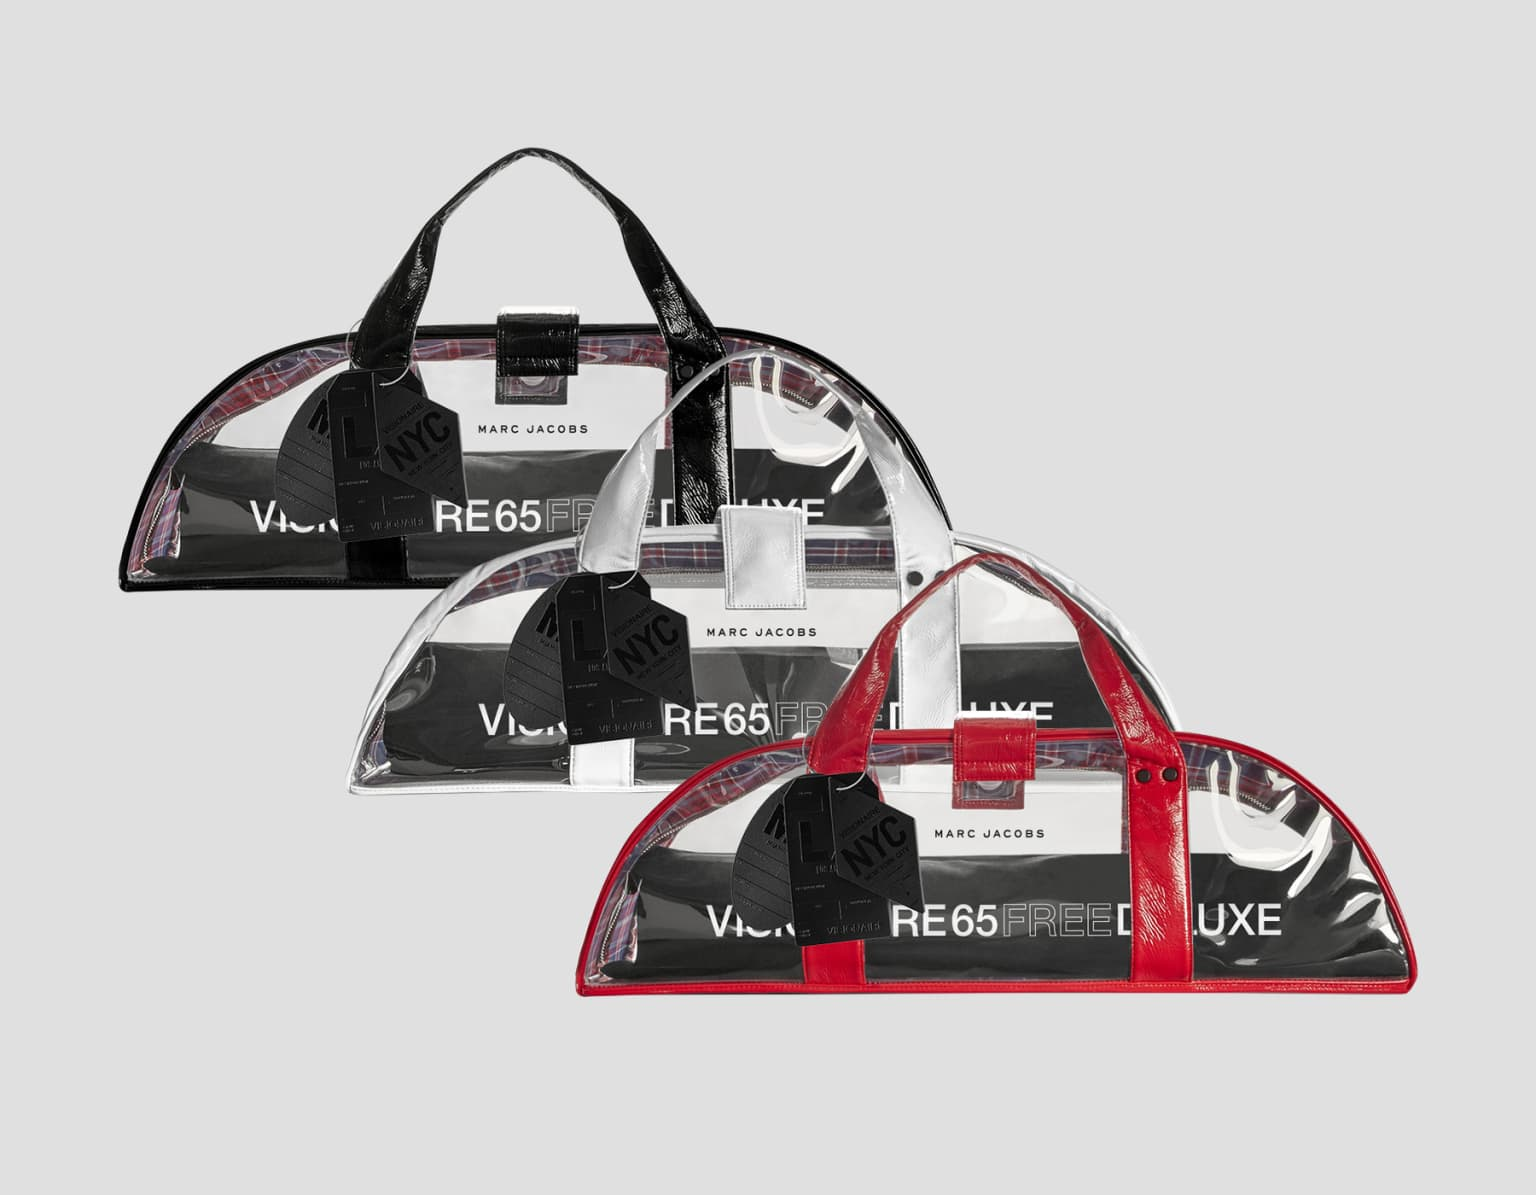 Visionaire 65 Free Deluxe Marc Jacobs